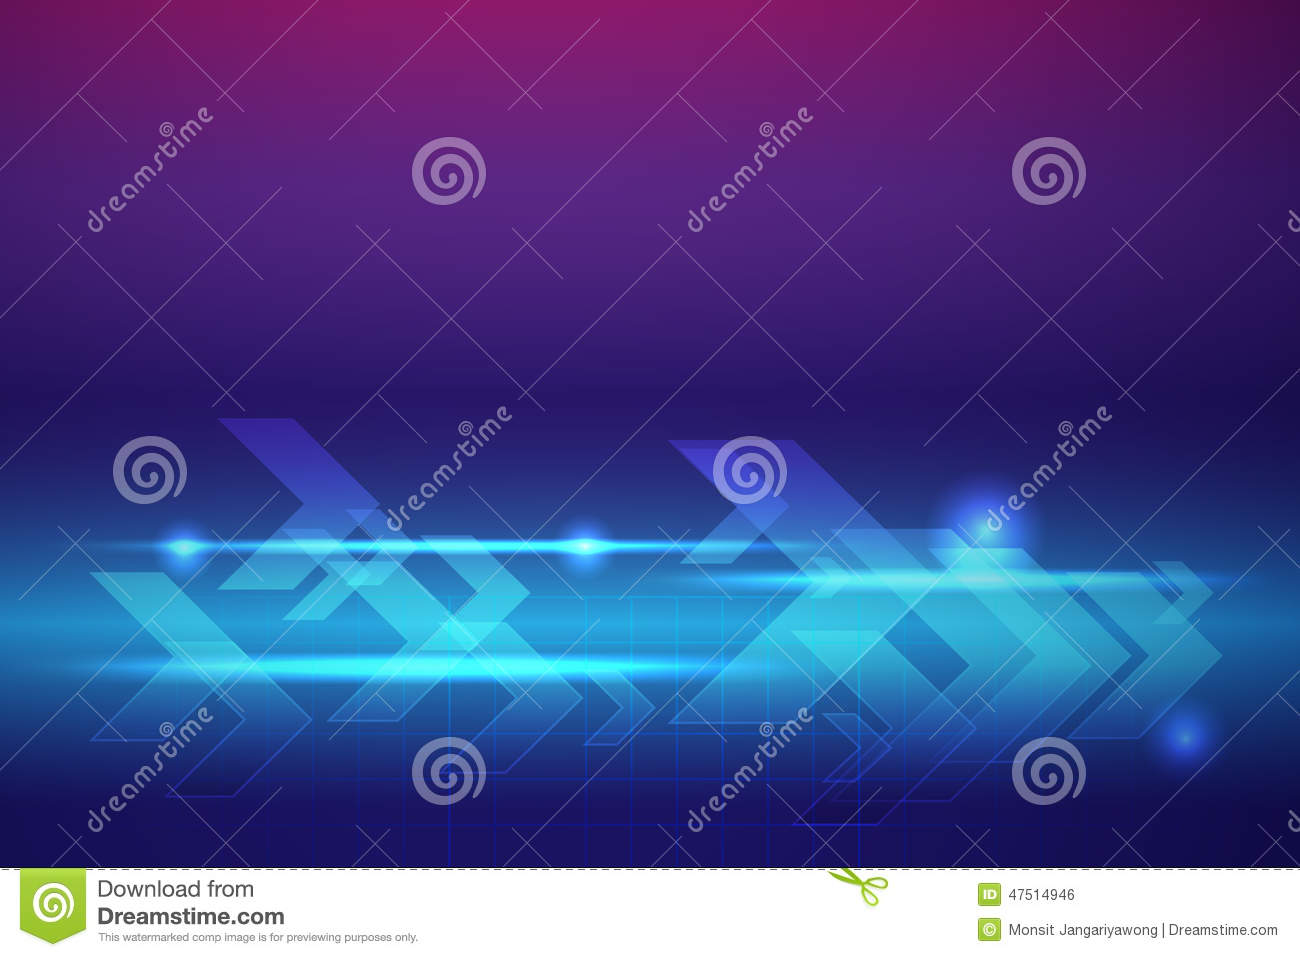 Blue arrows abstract vector background